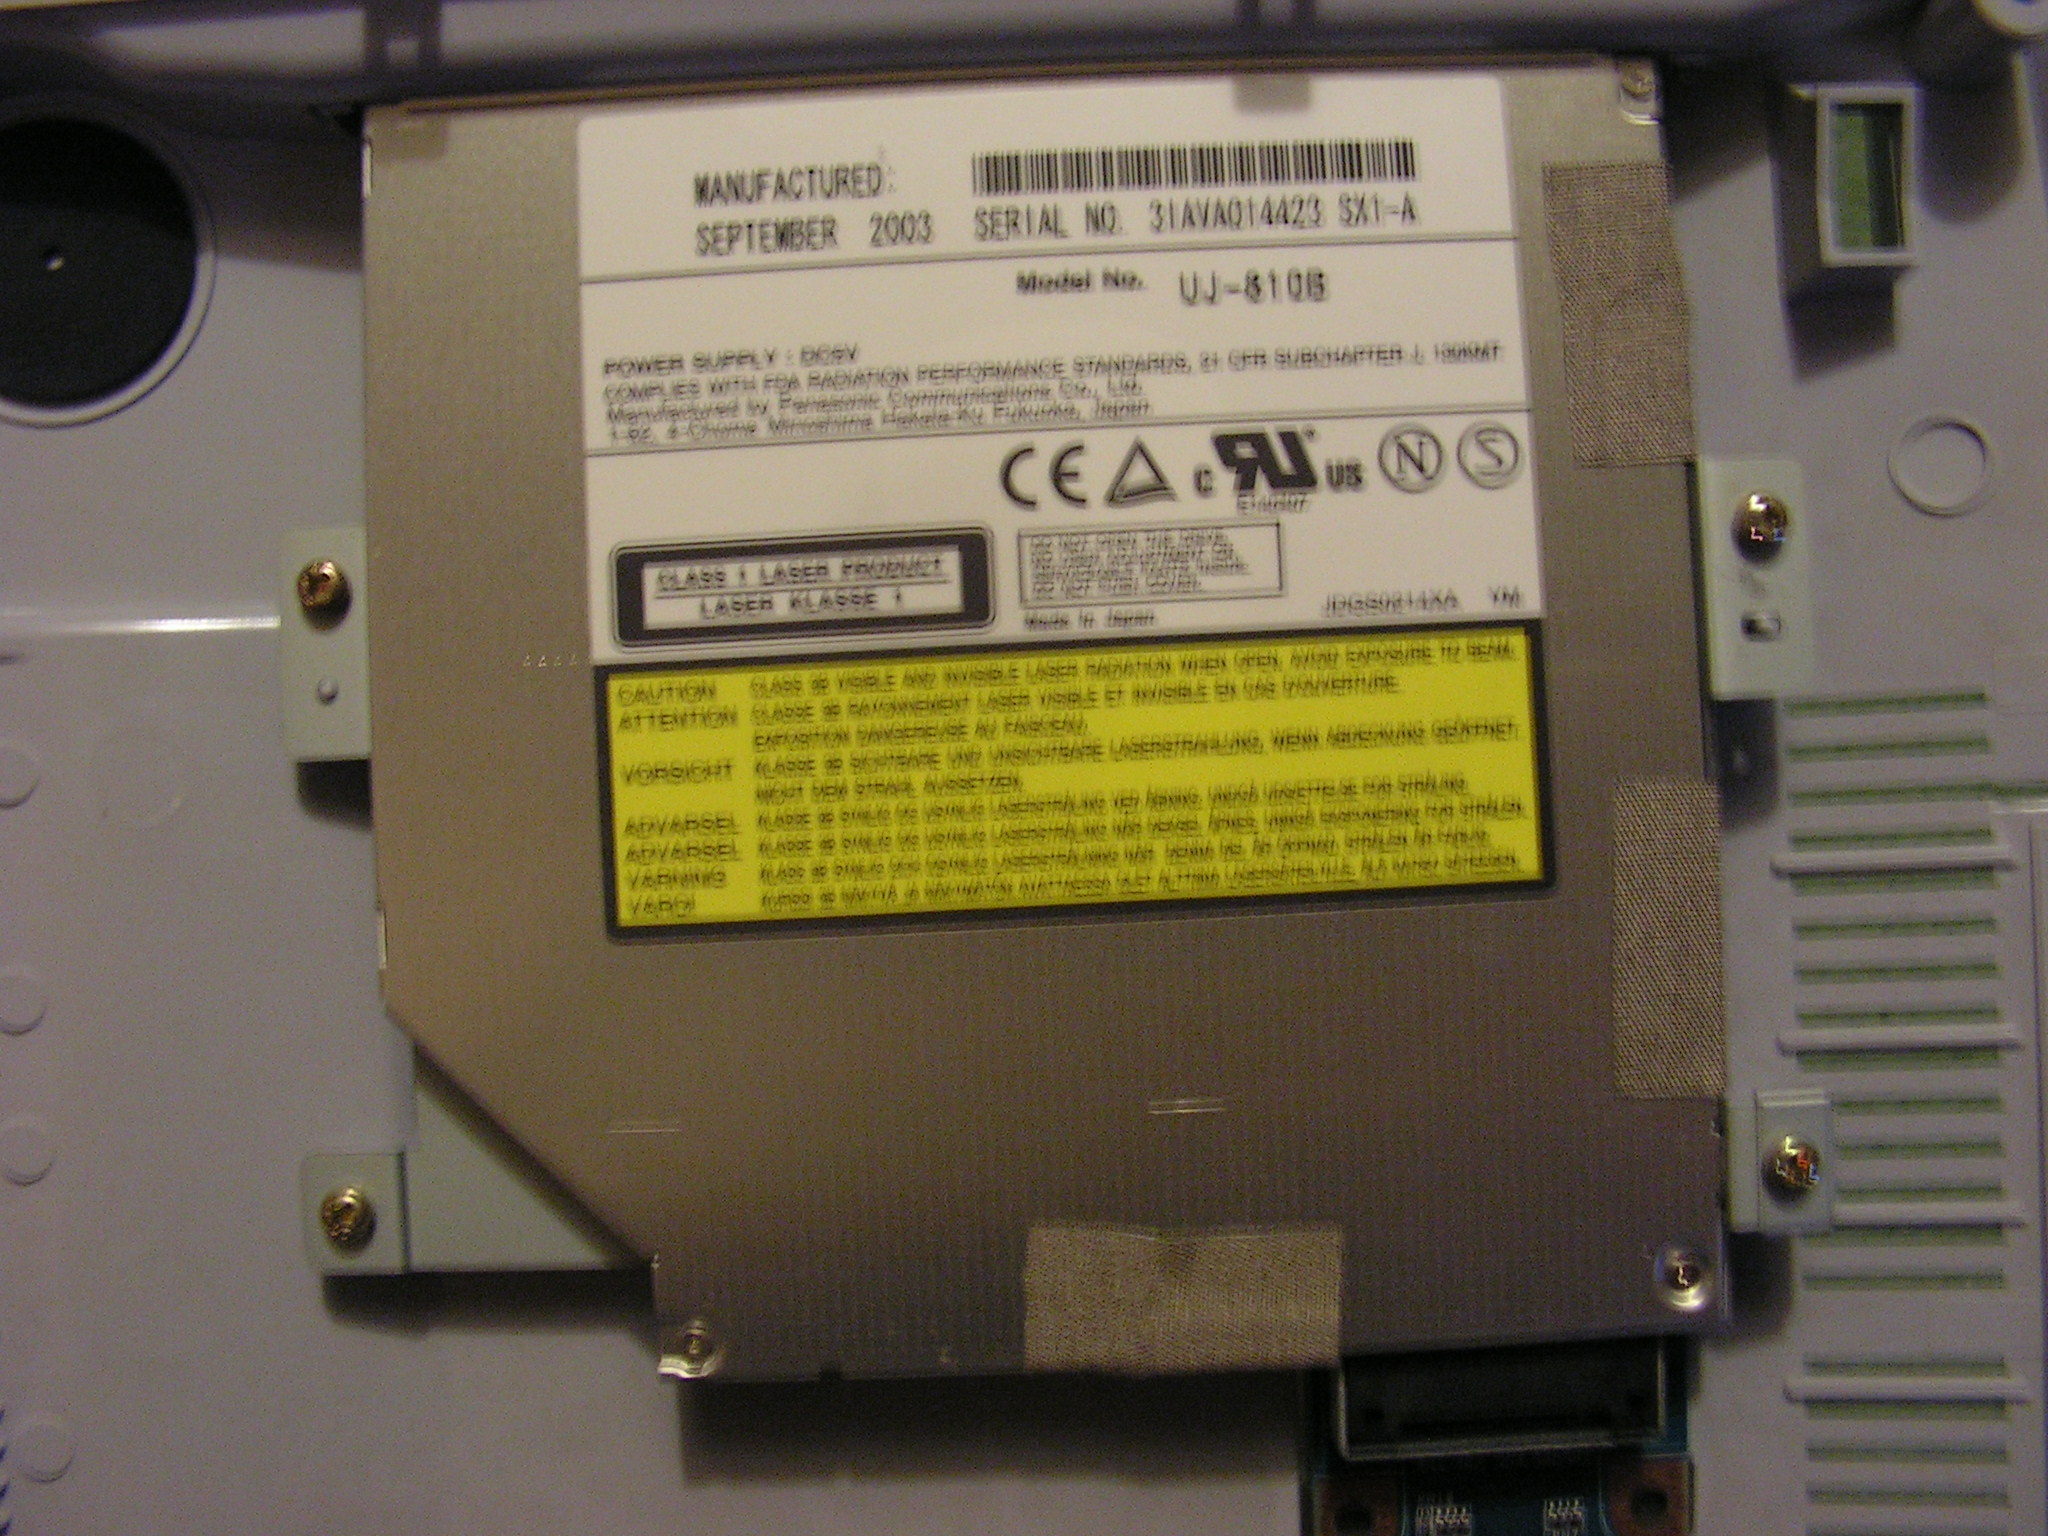 MATSHITA DVD-RAM UJ870BJ DRIVERS FOR WINDOWS VISTA